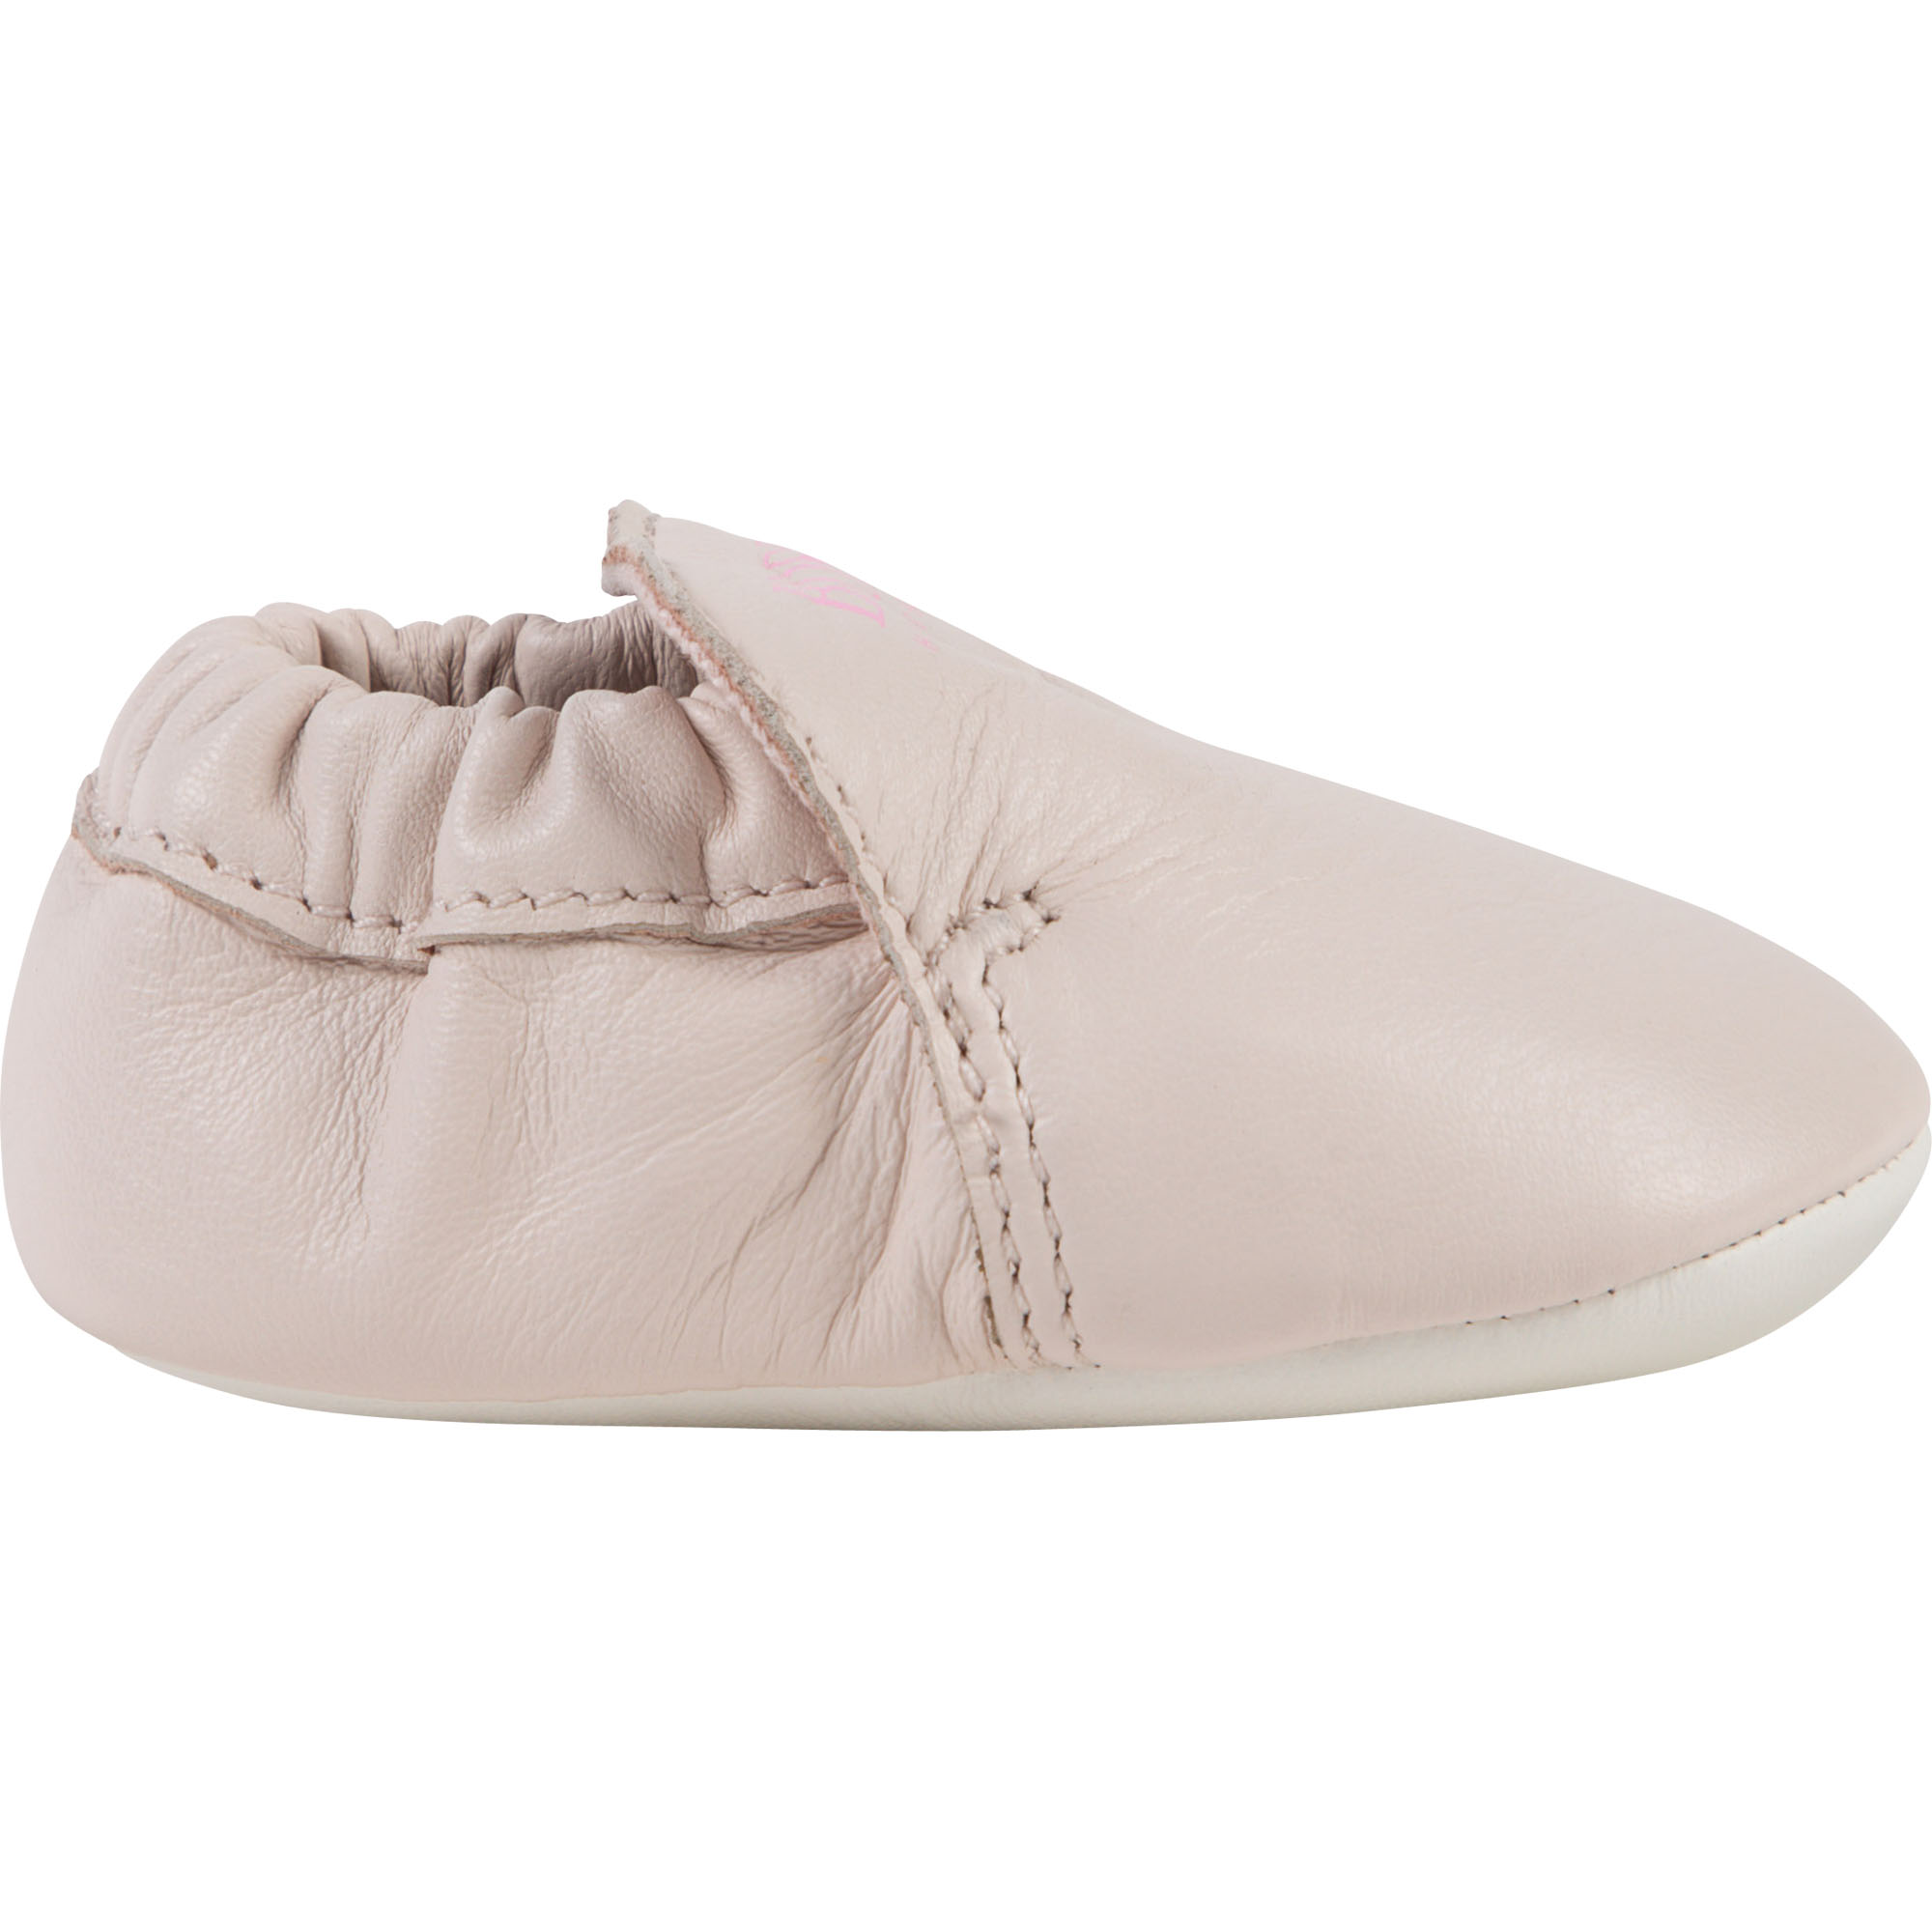 CHAUSSONS BOSS pour FILLE